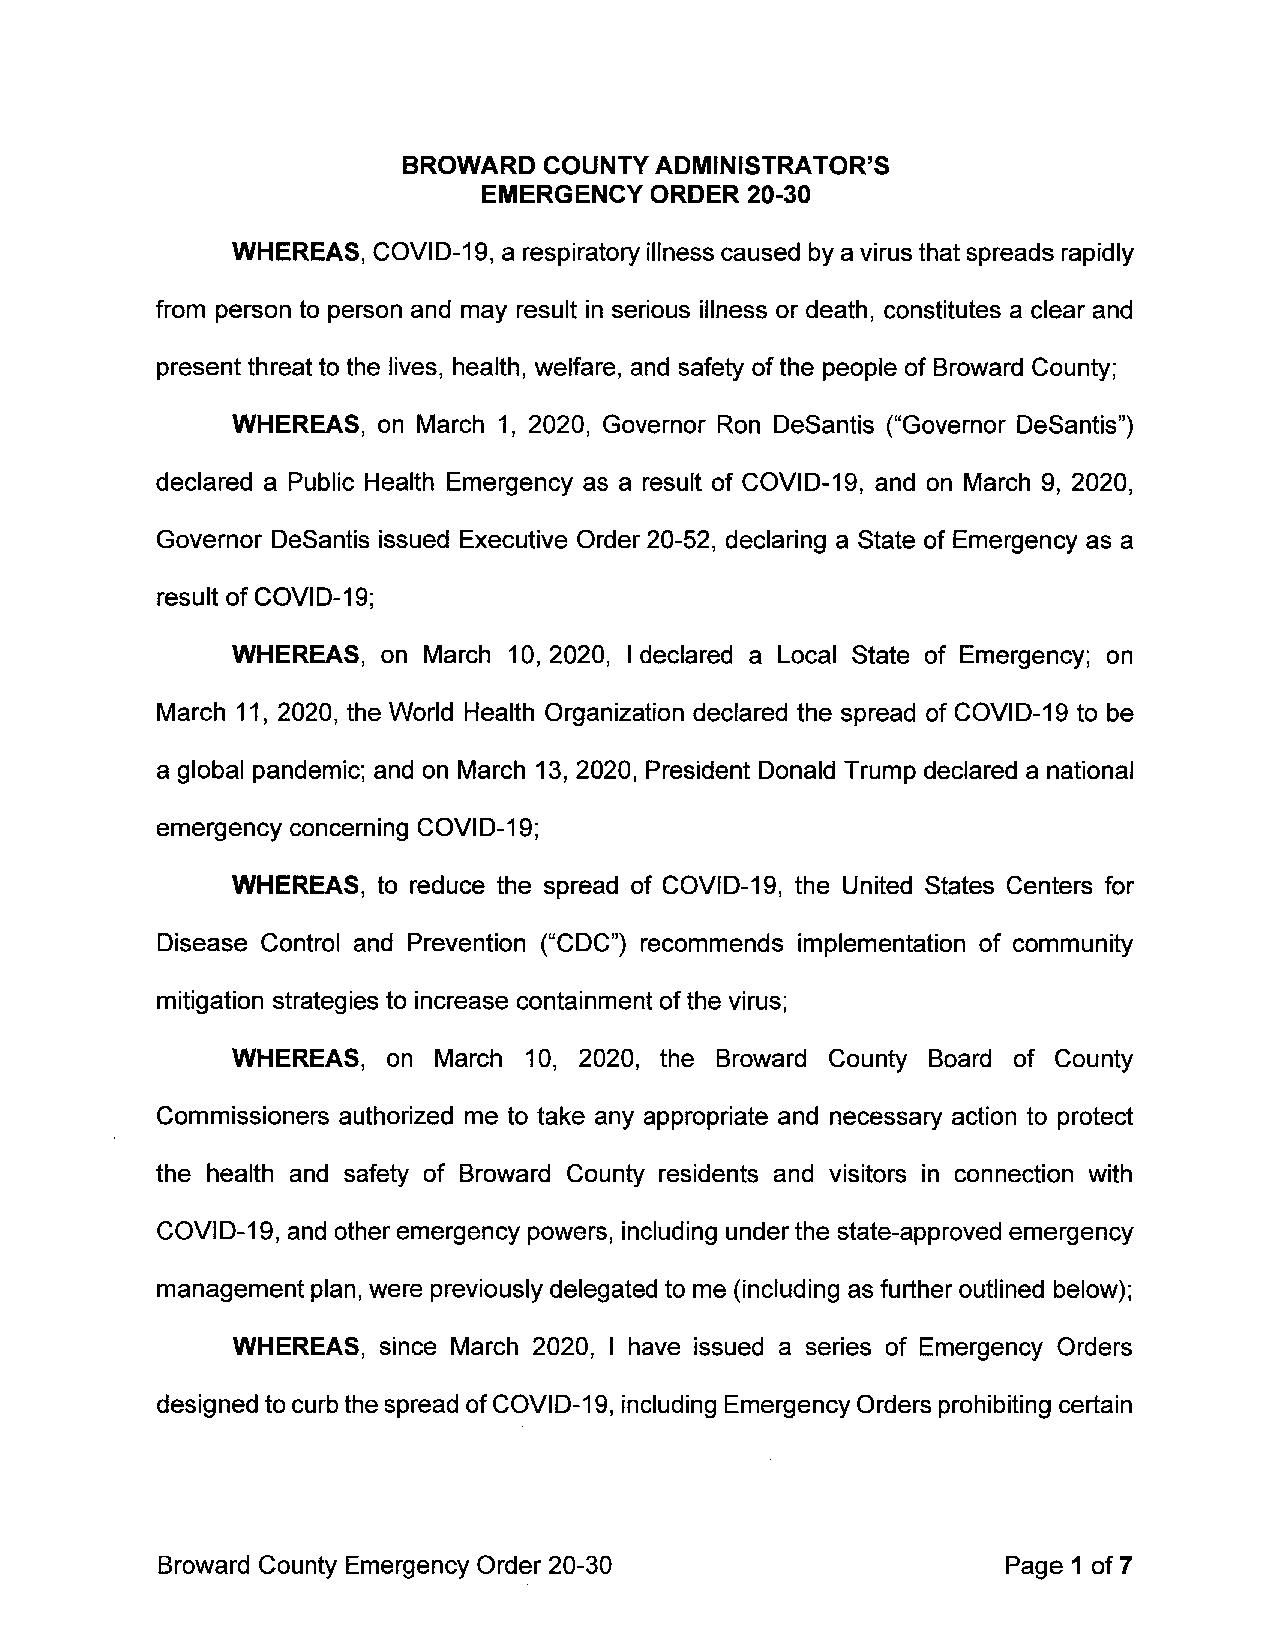 COVID 19 - Broward County Emergency Order 20-30 - Countywide Curfew - 12-25-20.pdf